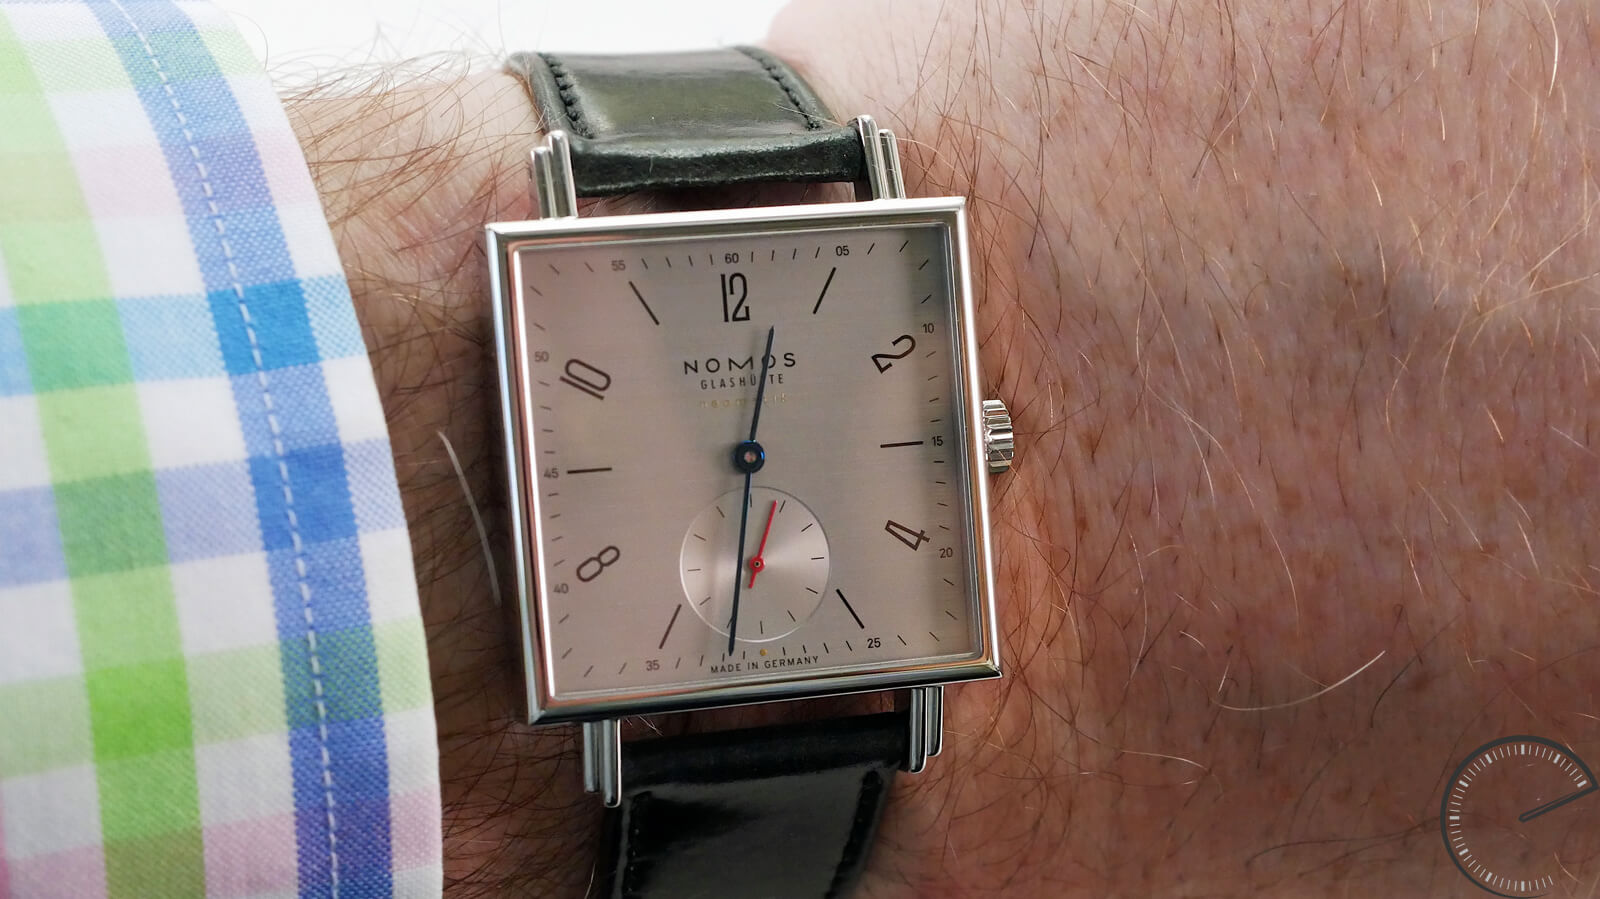 NOMOS Glashutte Tetra neomatik 29 silvercut - square cased watch with Manufacture movement